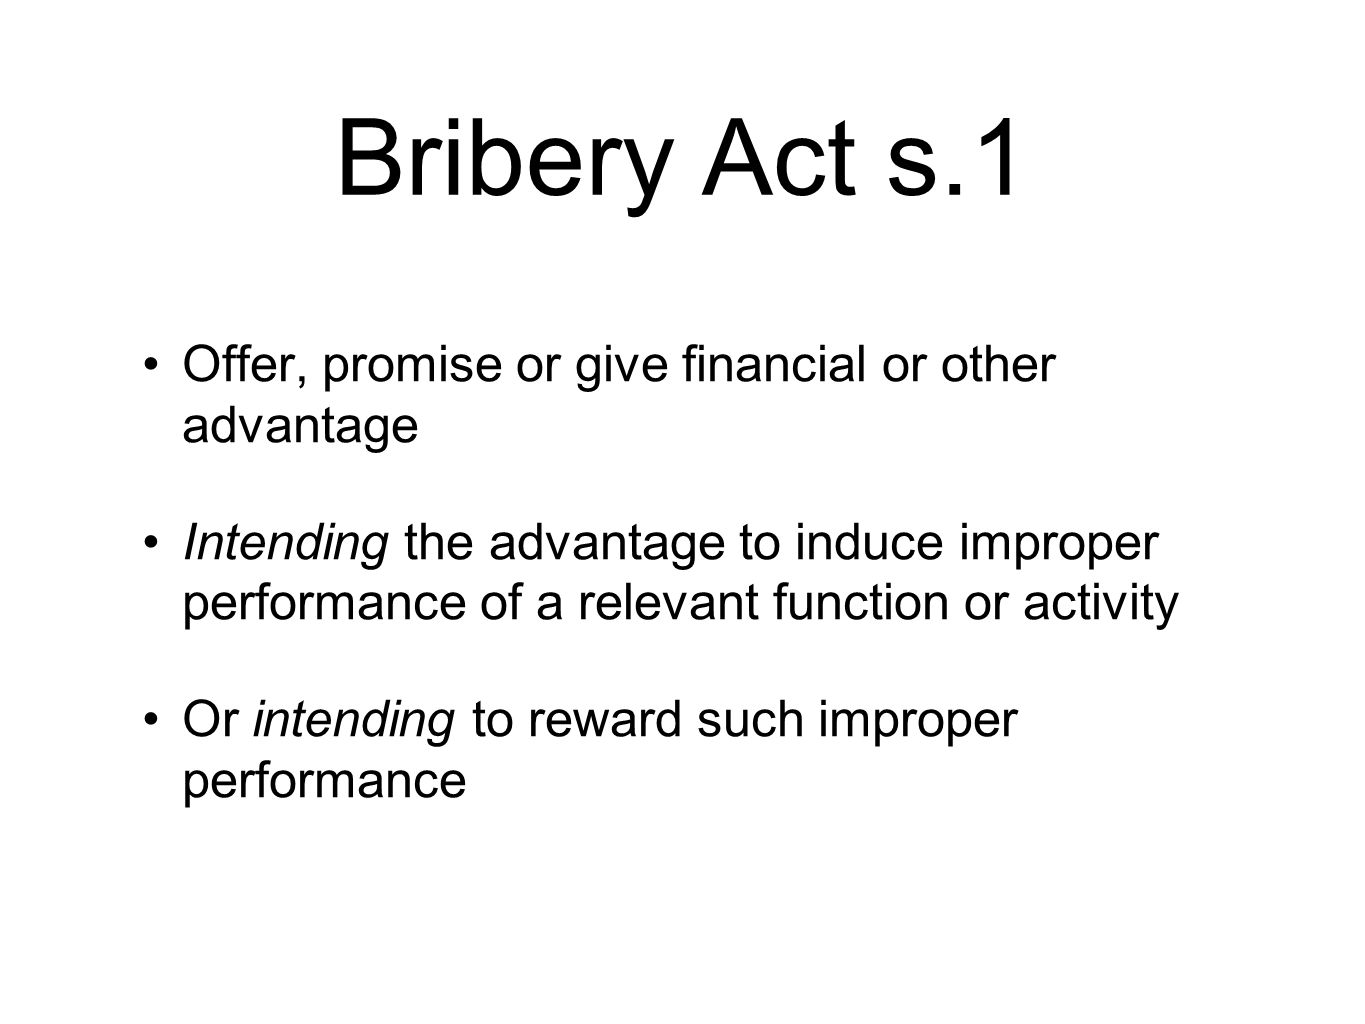 Bribery Act s.1 Offer, promise or give financial or other advantage Intending the advantage to induce improper performance of a relevant function or activity Or intending to reward such improper performance